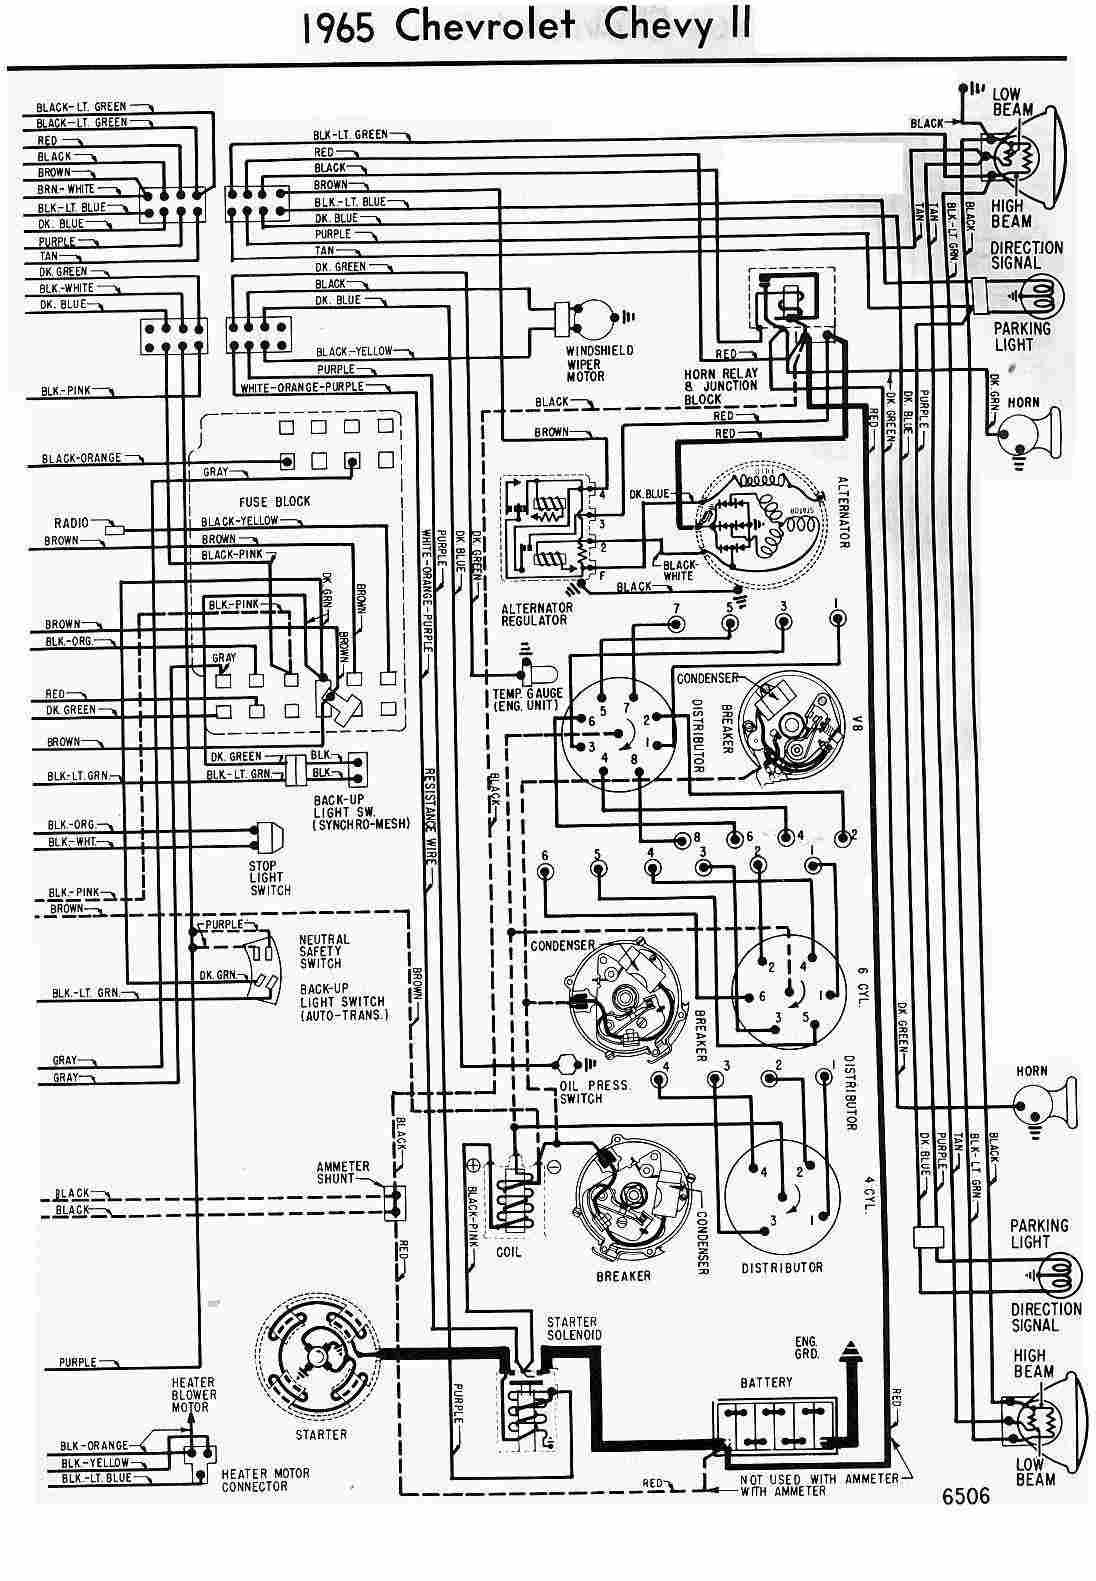 chevrolet car manuals, wiring diagrams pdf & fault codes 1984 chevy impala  chevy truck wiring harness